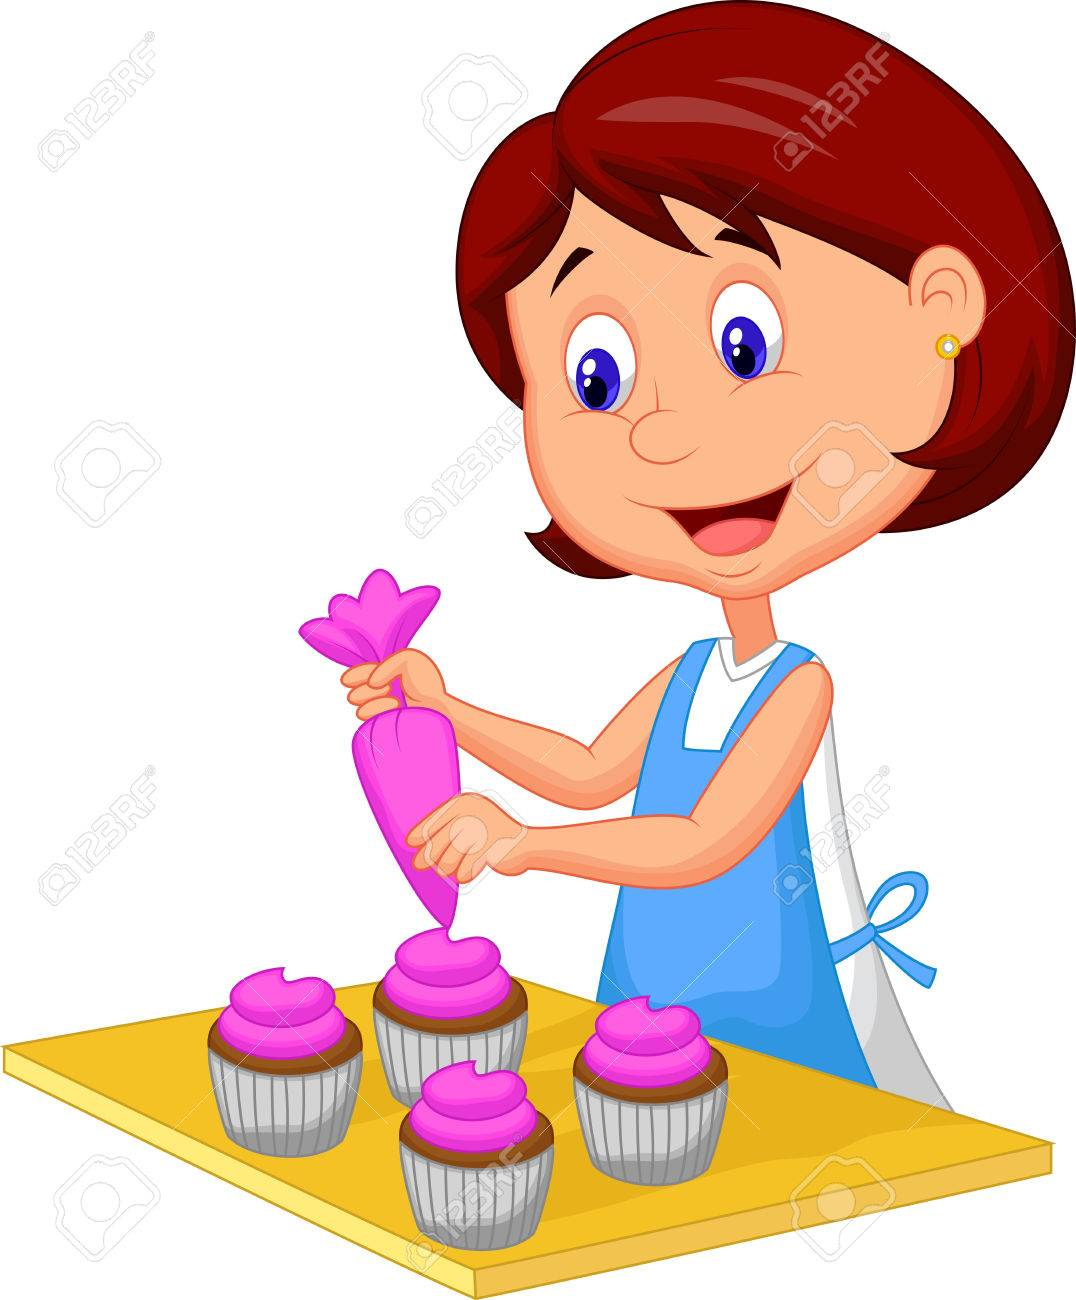 catoon woman with apron decorating cupcakes stock vector 27657240 - Woman Decorating Cupcakes